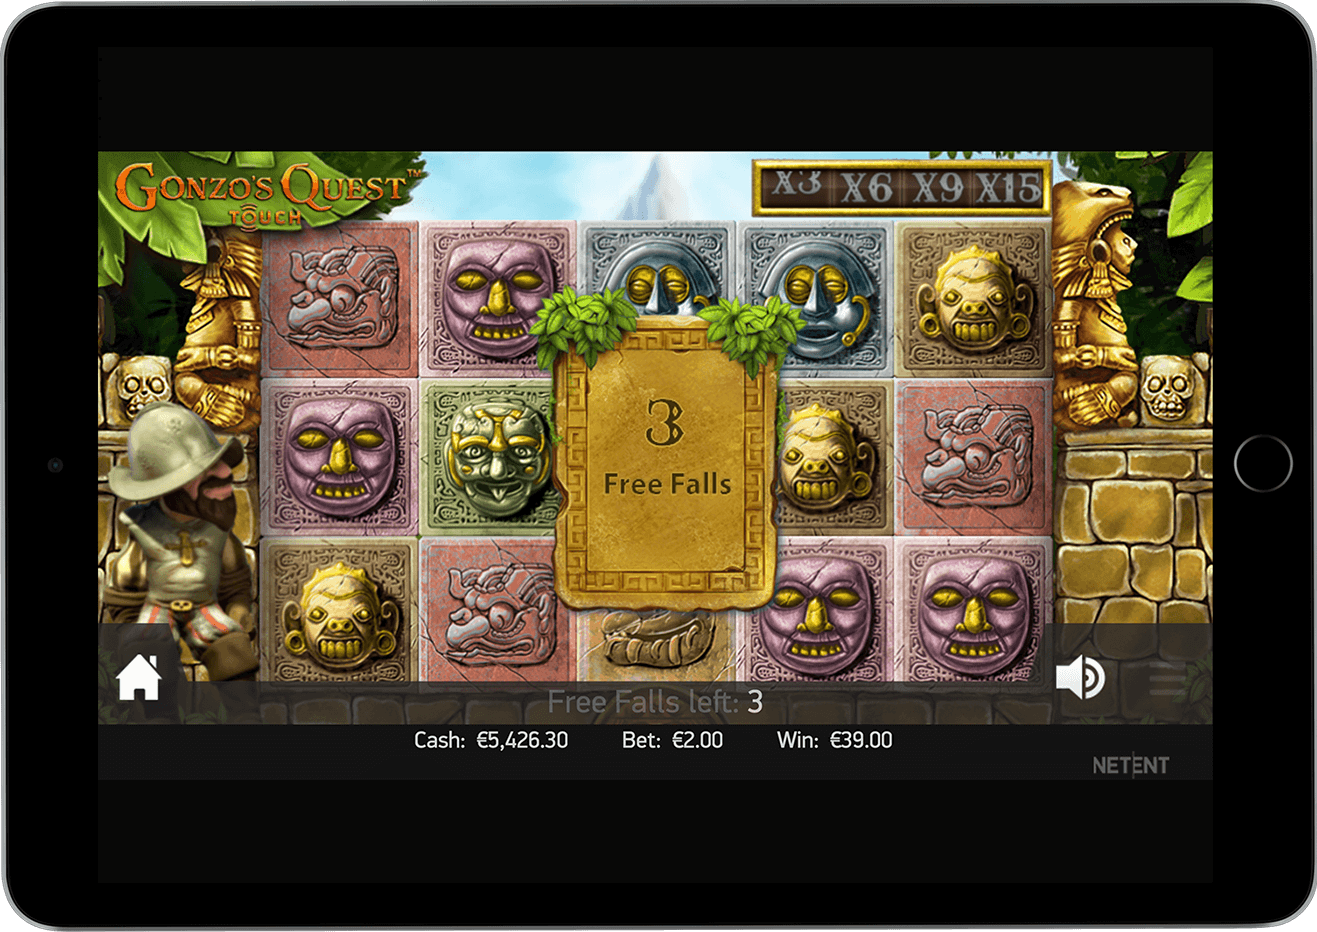 Gonzos Quest slot free spins